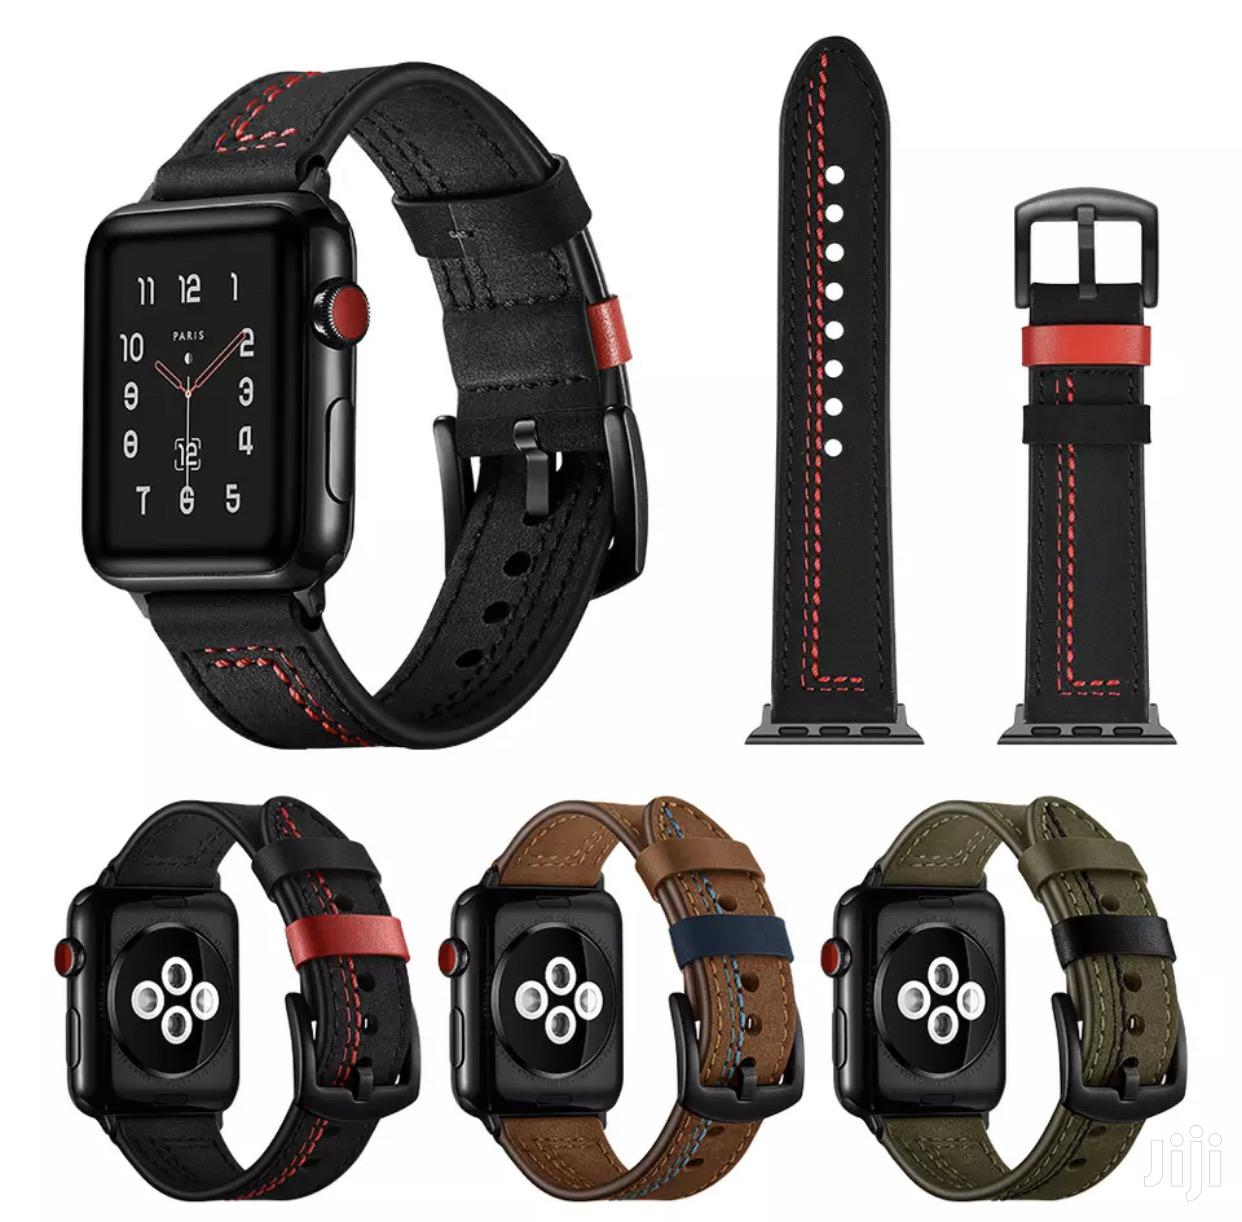 Bandream Genuine Leather Strap Band For Apple Watch Series 1 2 3 4 5 | Smart Watches & Trackers for sale in Accra Metropolitan, Greater Accra, Ghana